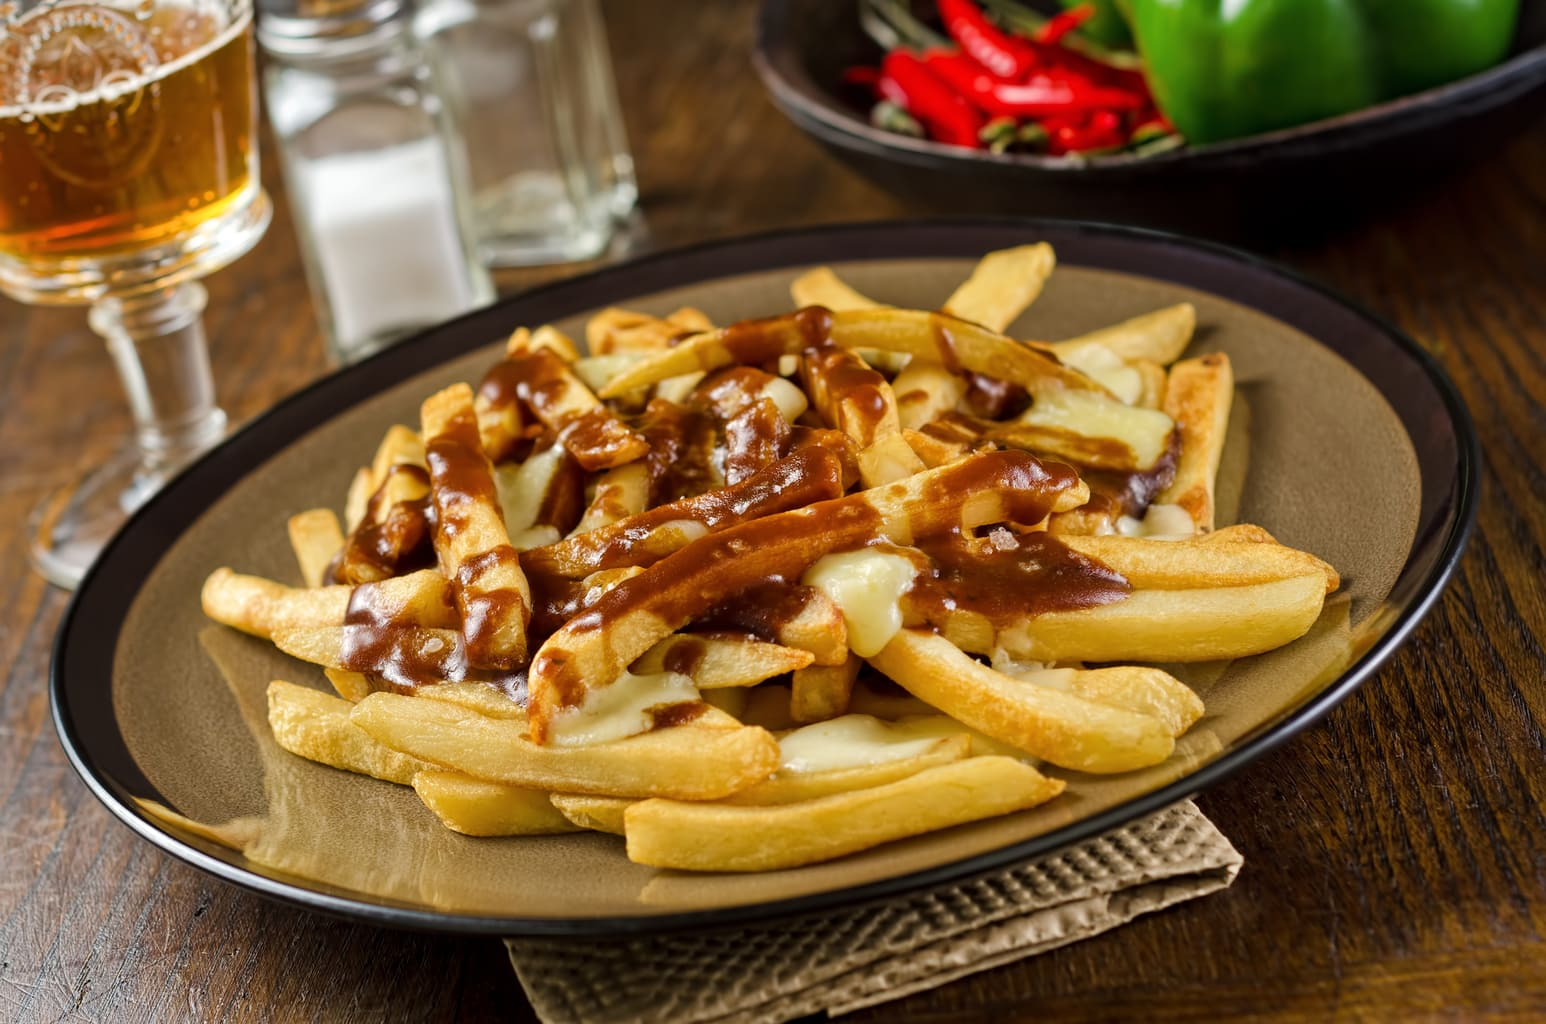 A plate of delicious poutine with french fries, gravy, and cheese curd.